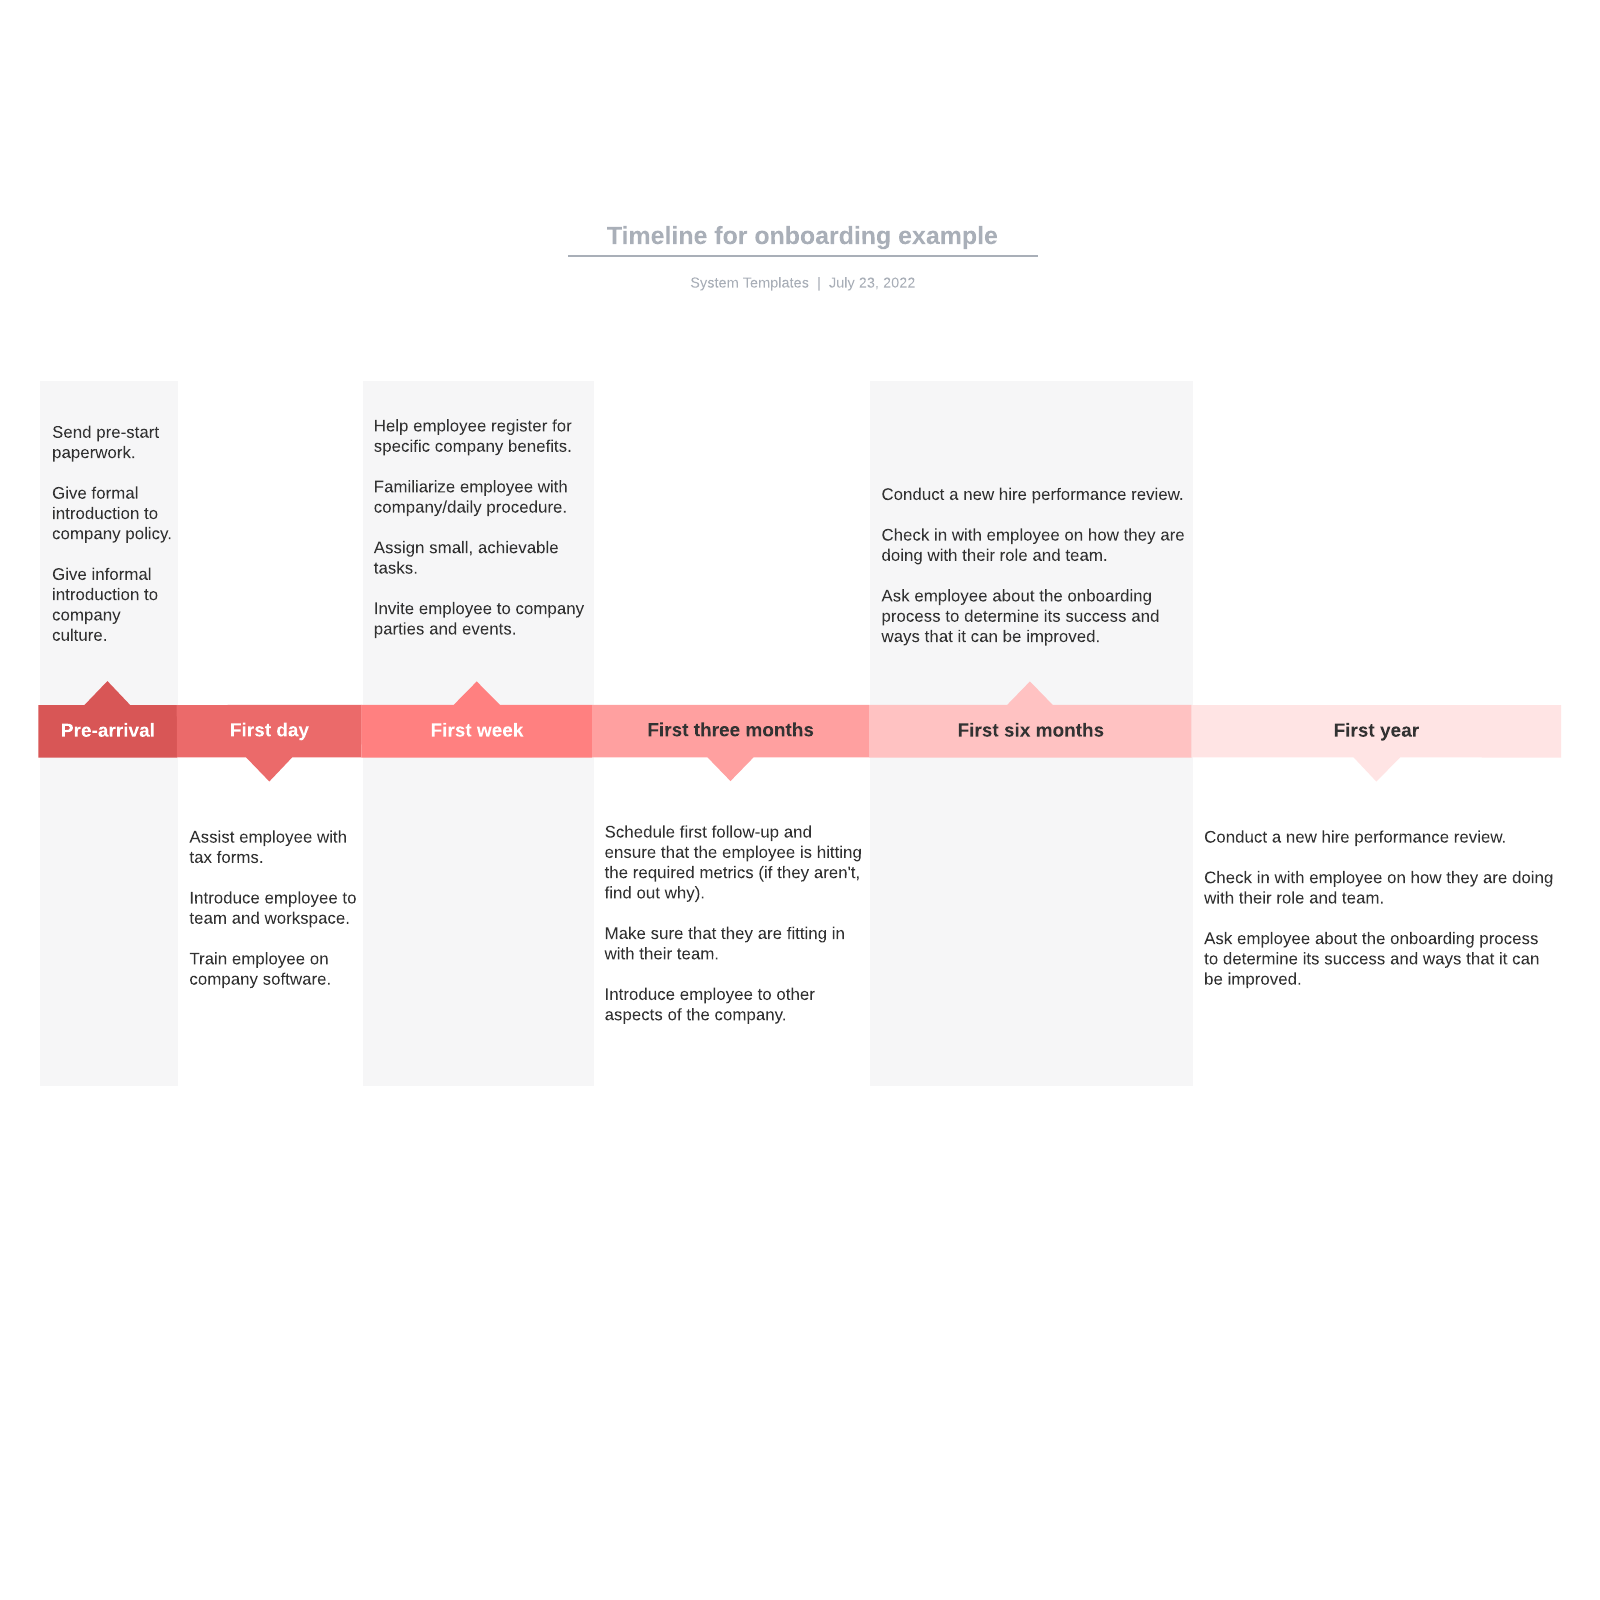 Timeline for onboarding example